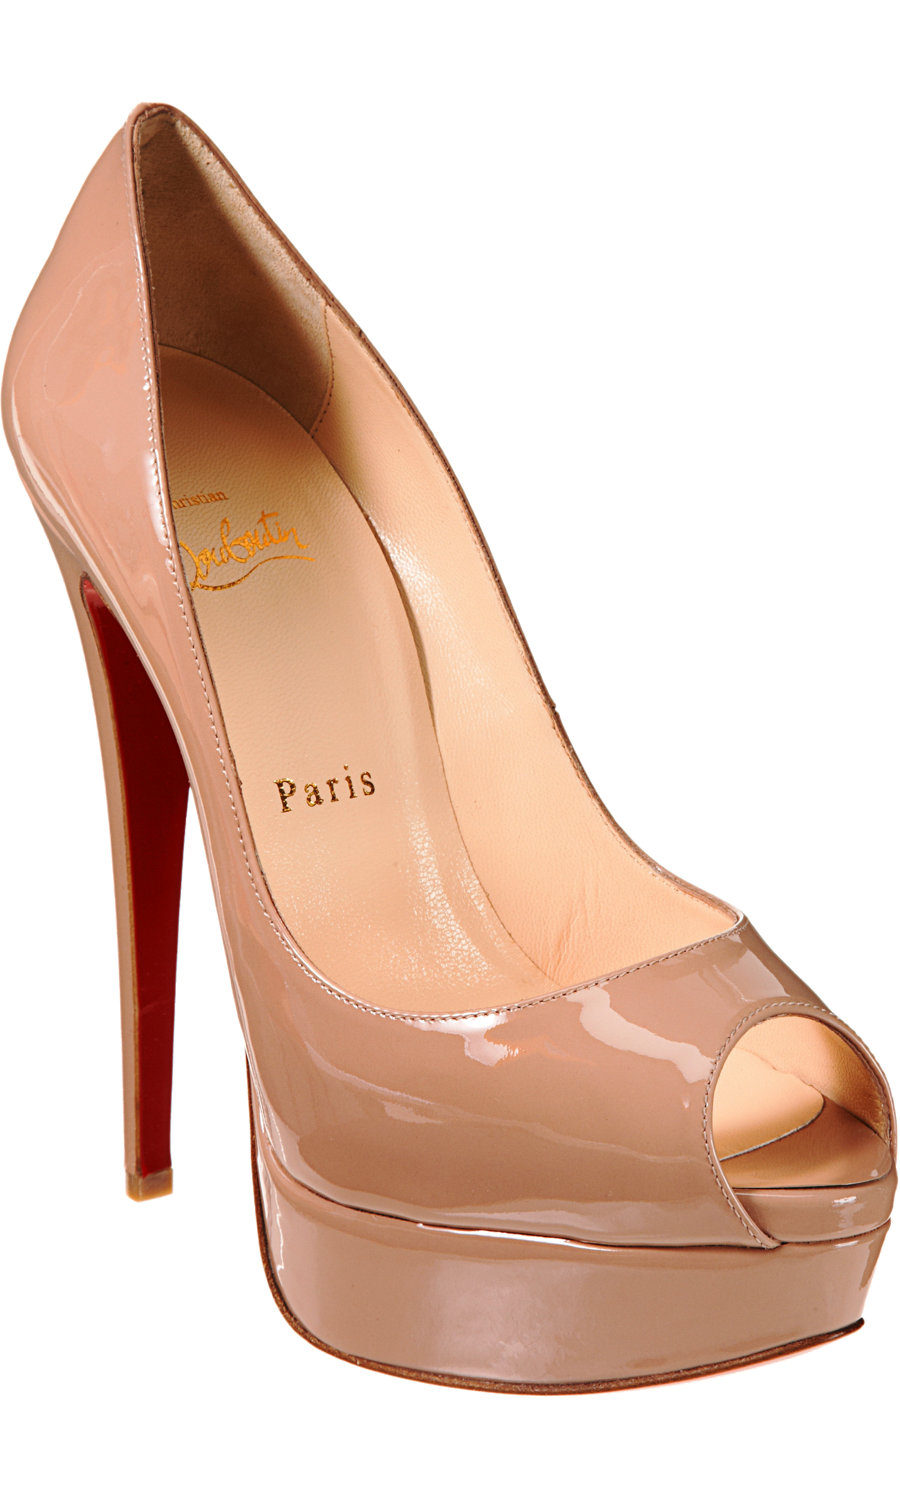 Christian Louboutin Lady Peep